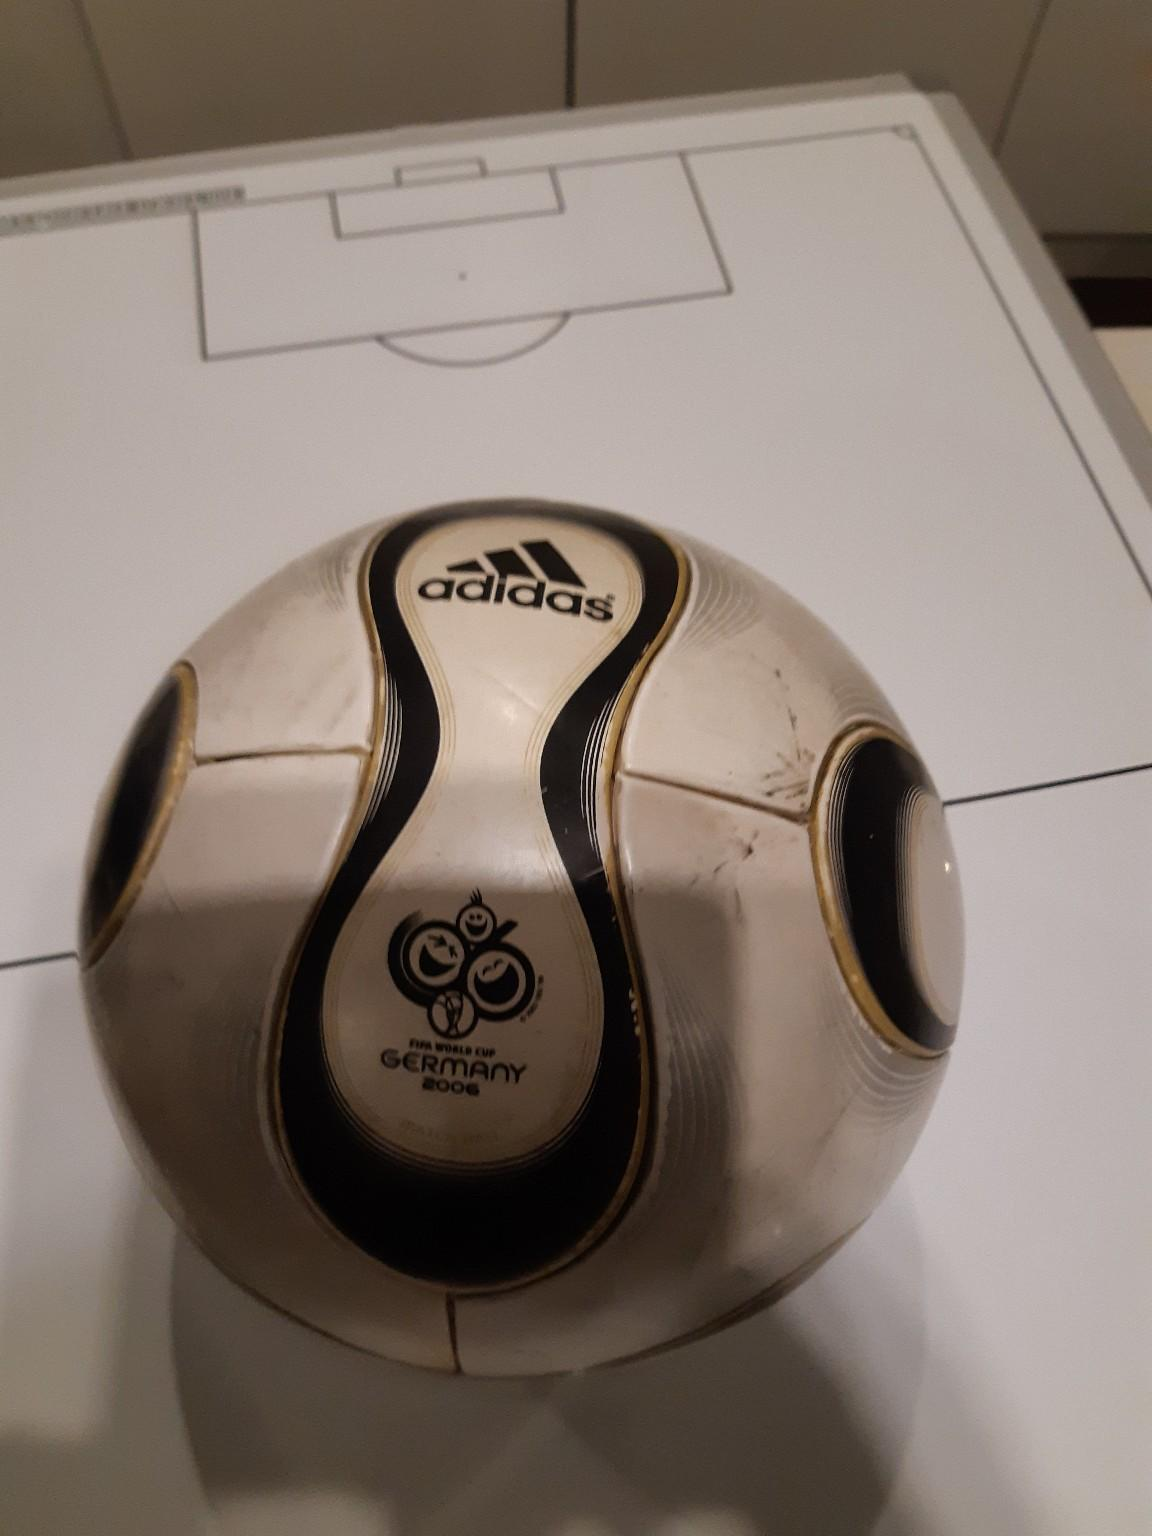 Adidas Fußball in 1210 Wien for €15.00 for sale | Shpock